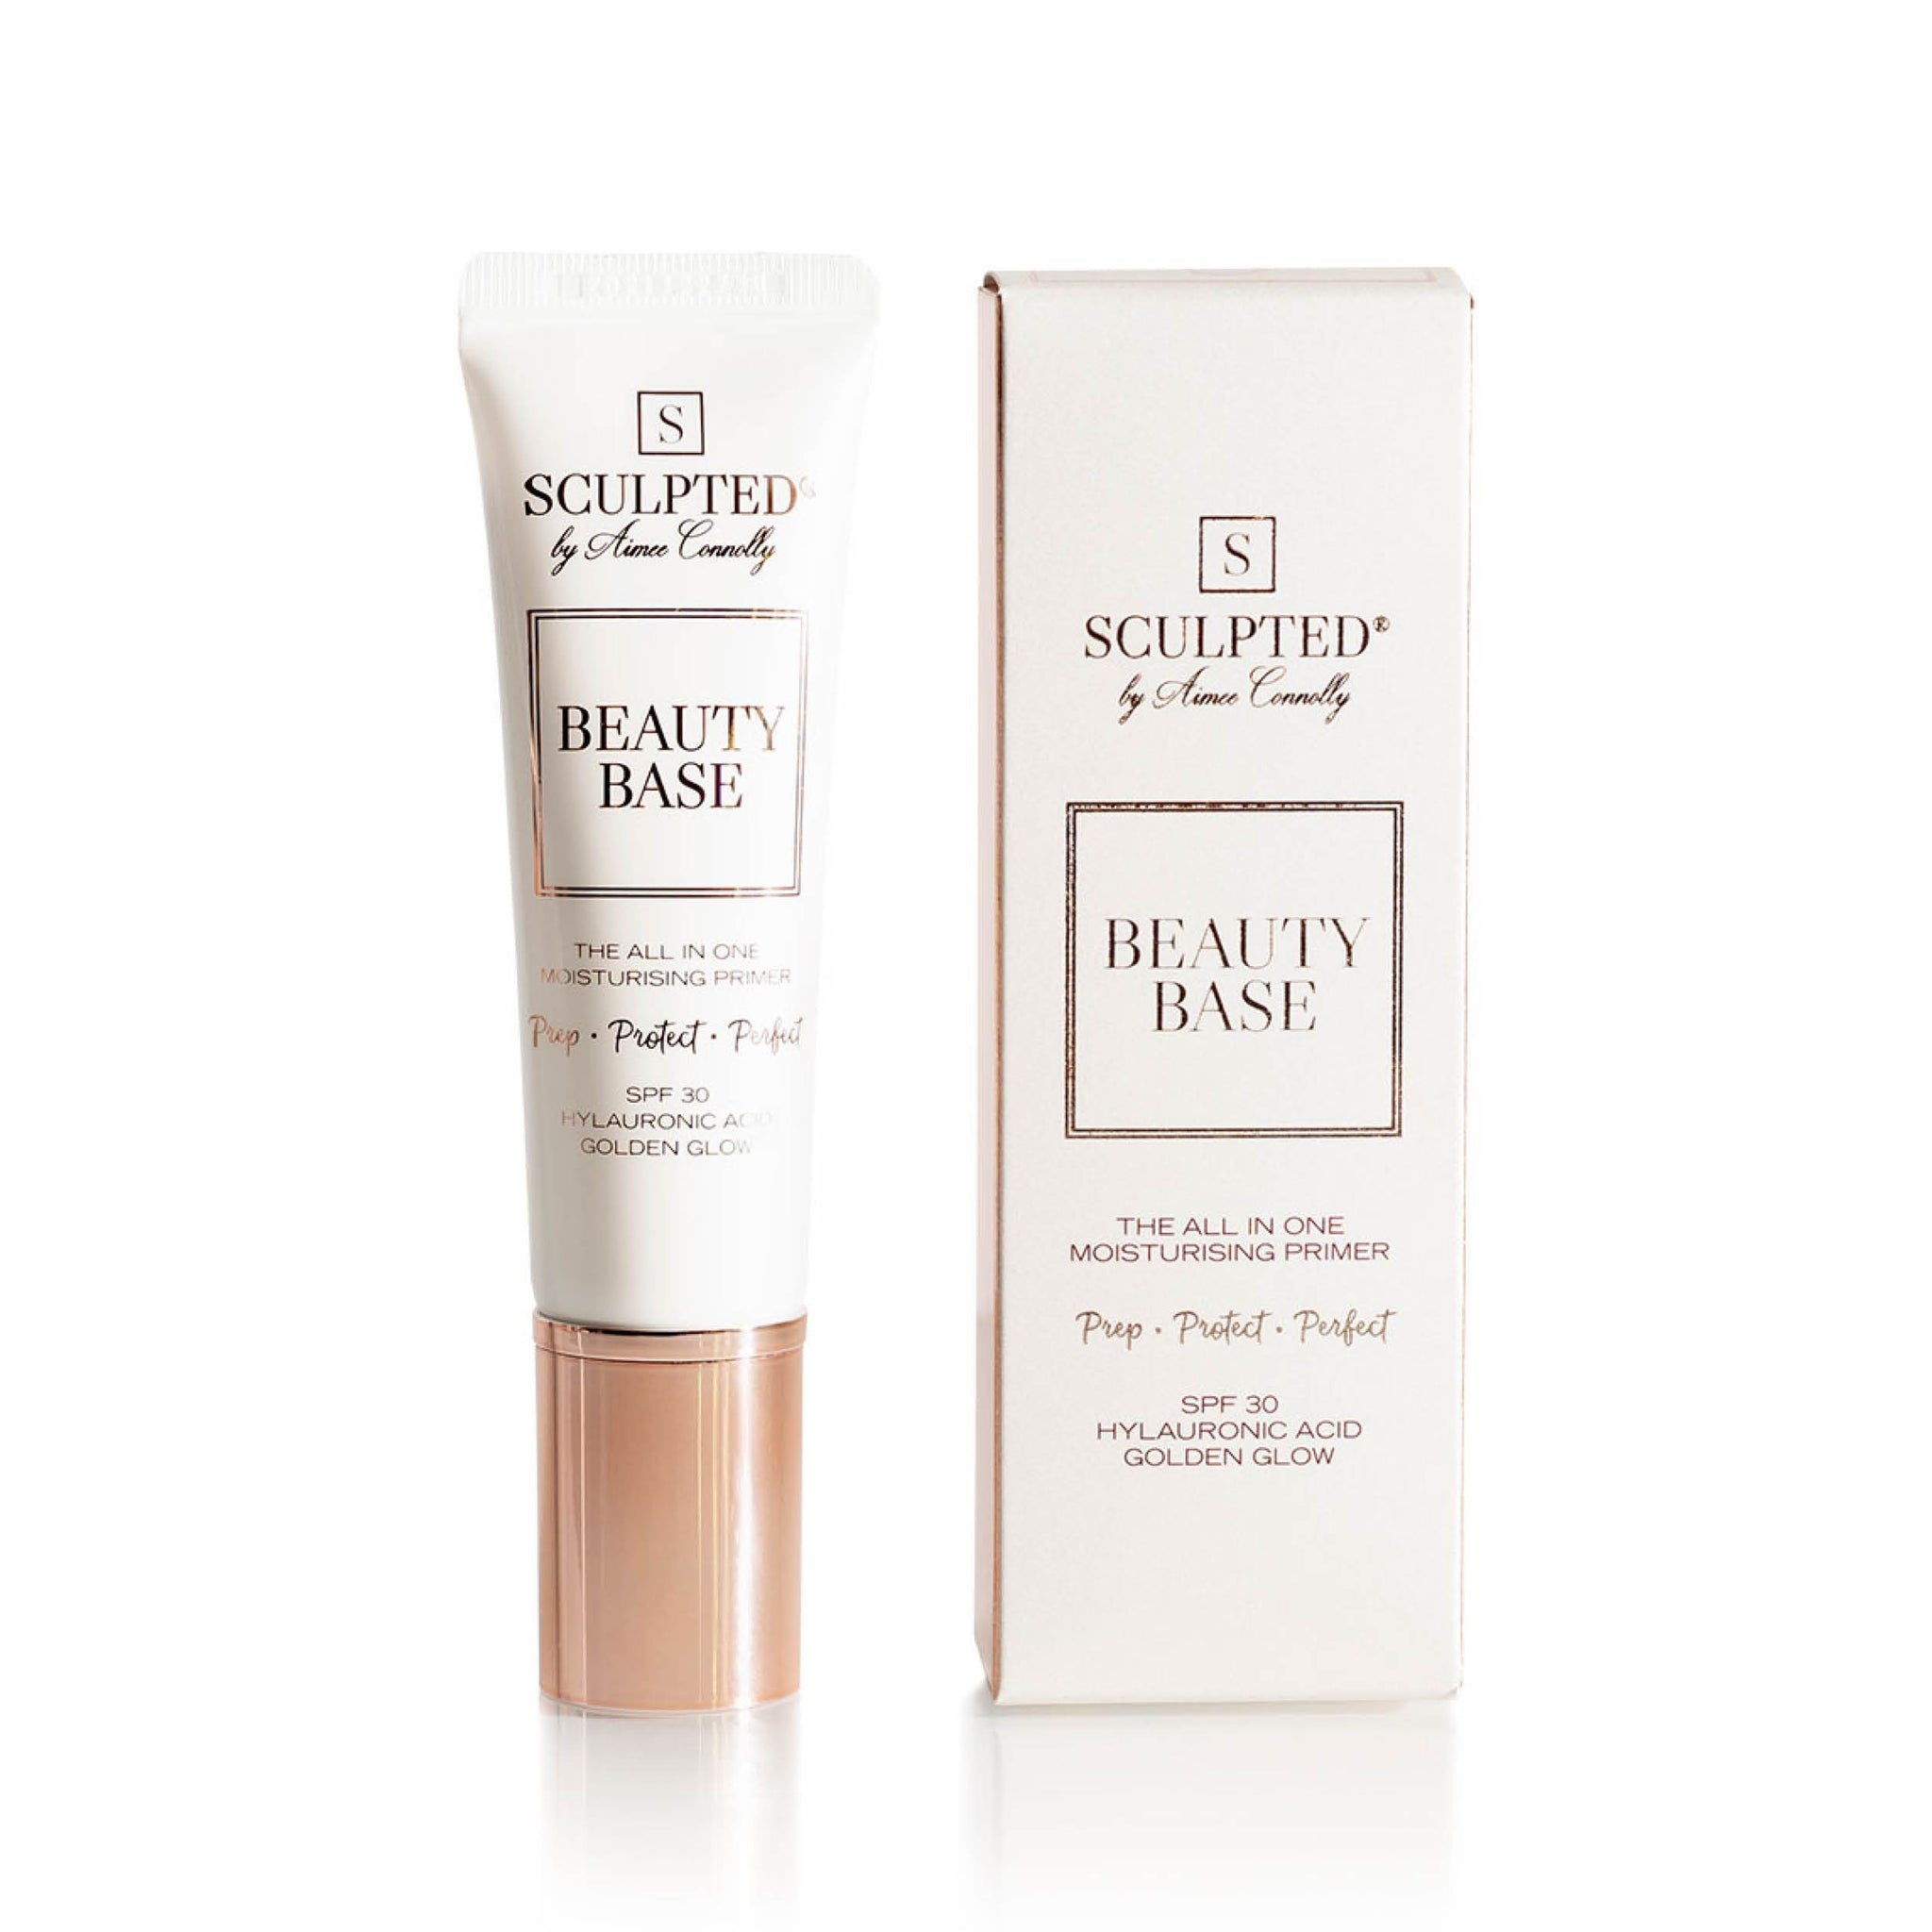 Sculpted By Aimee Connolly Beauty Base Primer